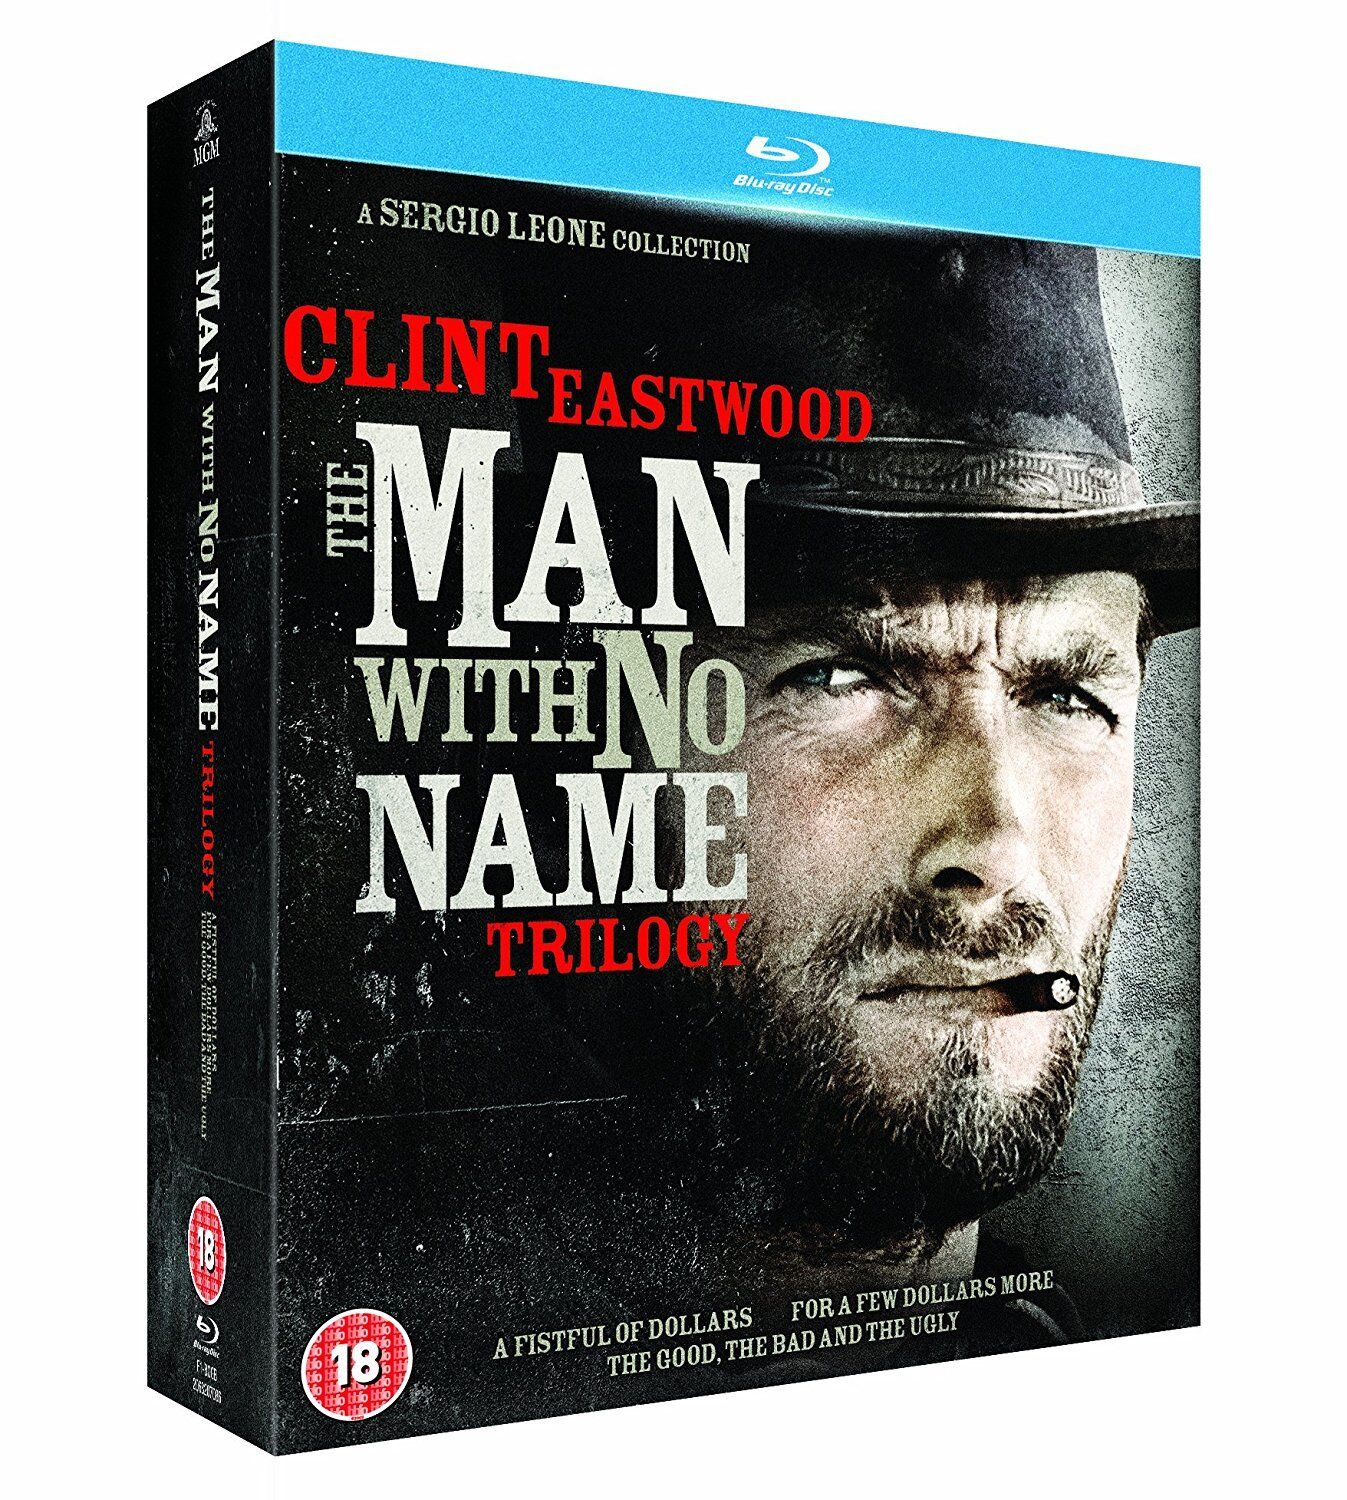 Купить Clint Eastwood - The Man with No Name Trilogy (Blu-ray, 3 Discs) *NEW*